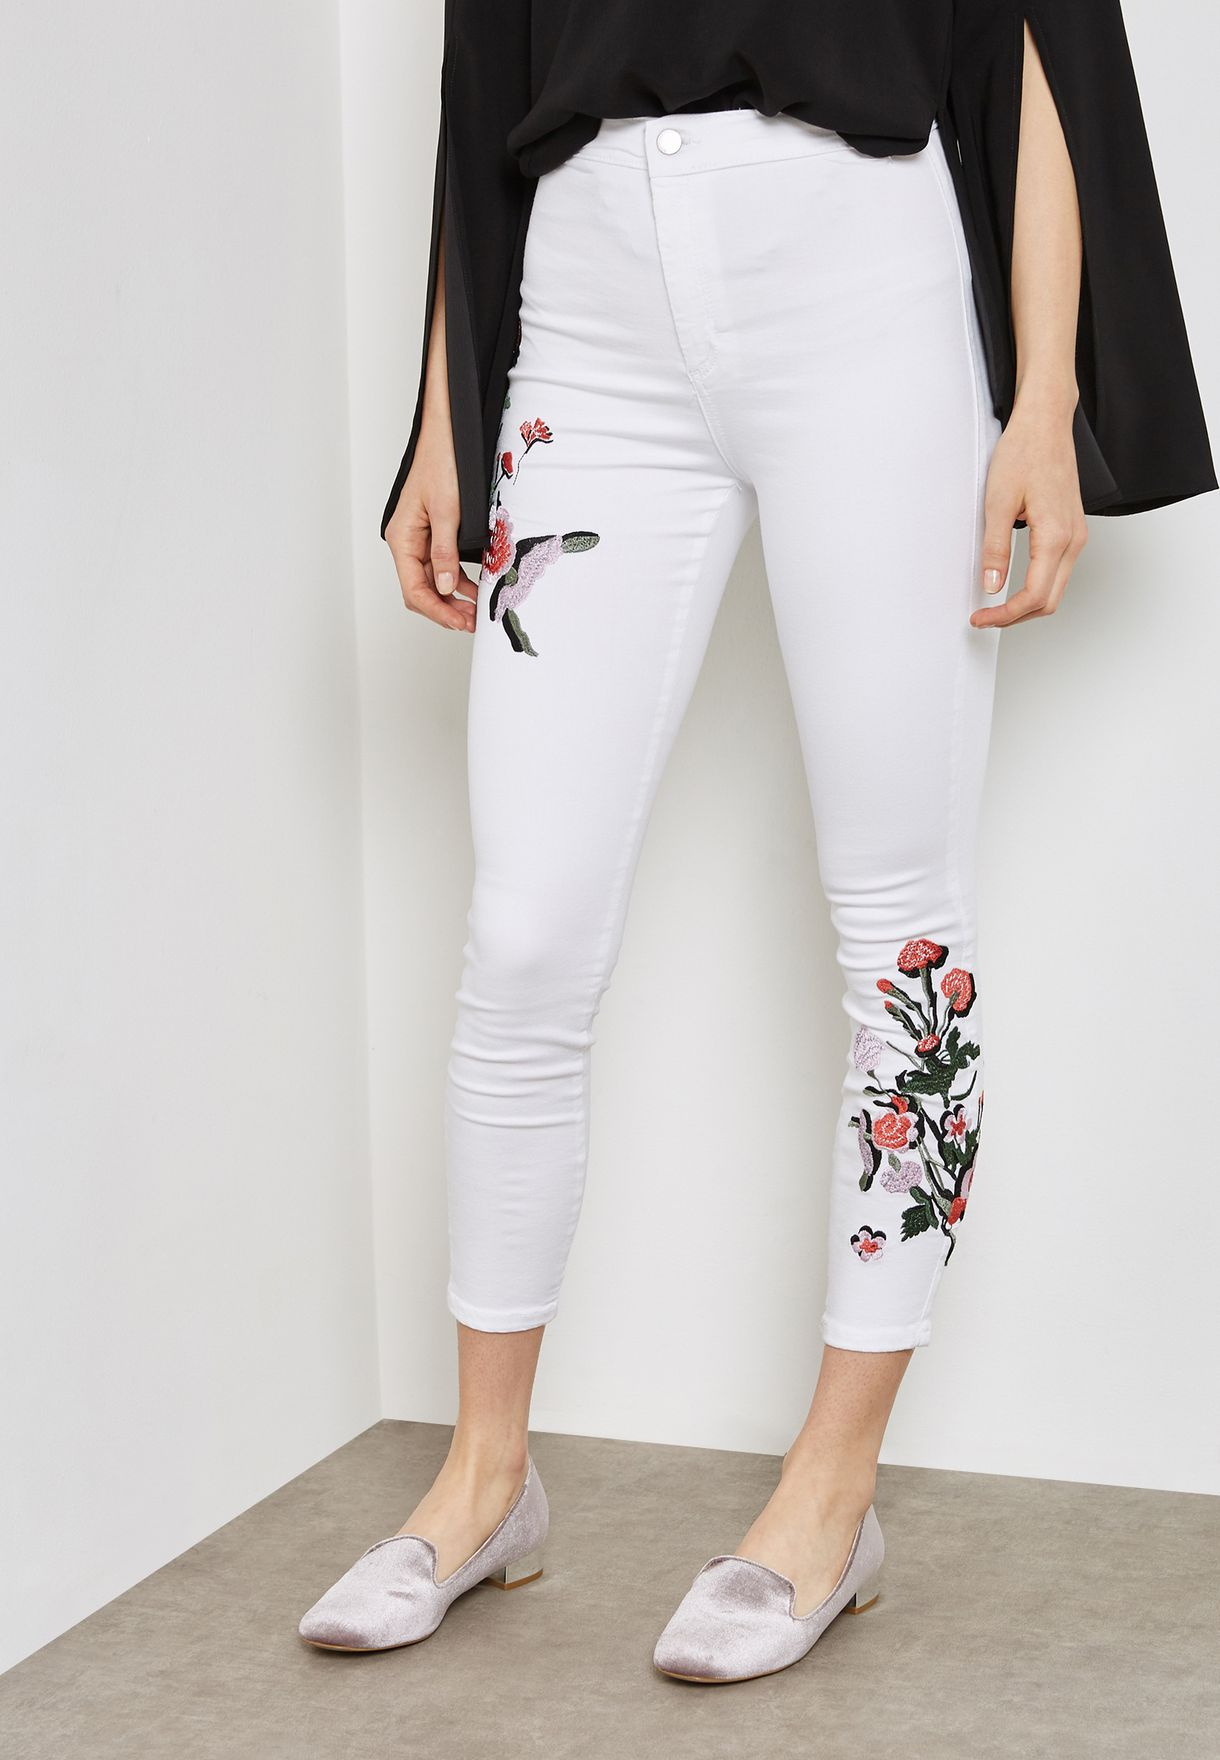 Shop Topshop White Moto Flower Embroidered Jeans 02y68lwht For Women